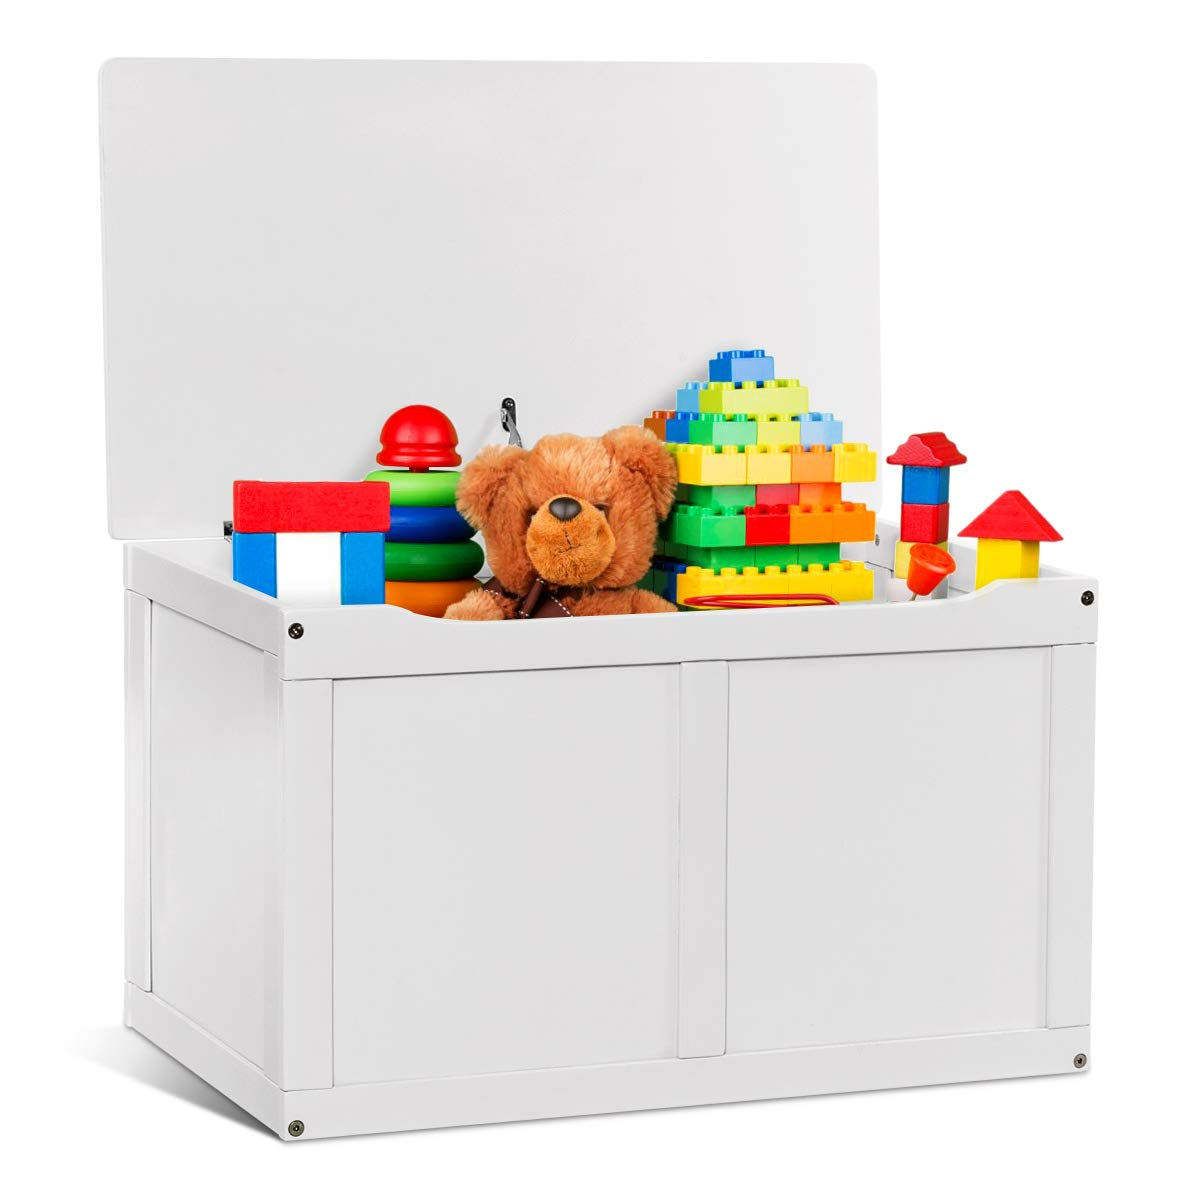 Costzon Toy Storage Chest Organizer, Wooden Toy Box with 2 Safety Hinge & Lid for Kids (White) by Costzon